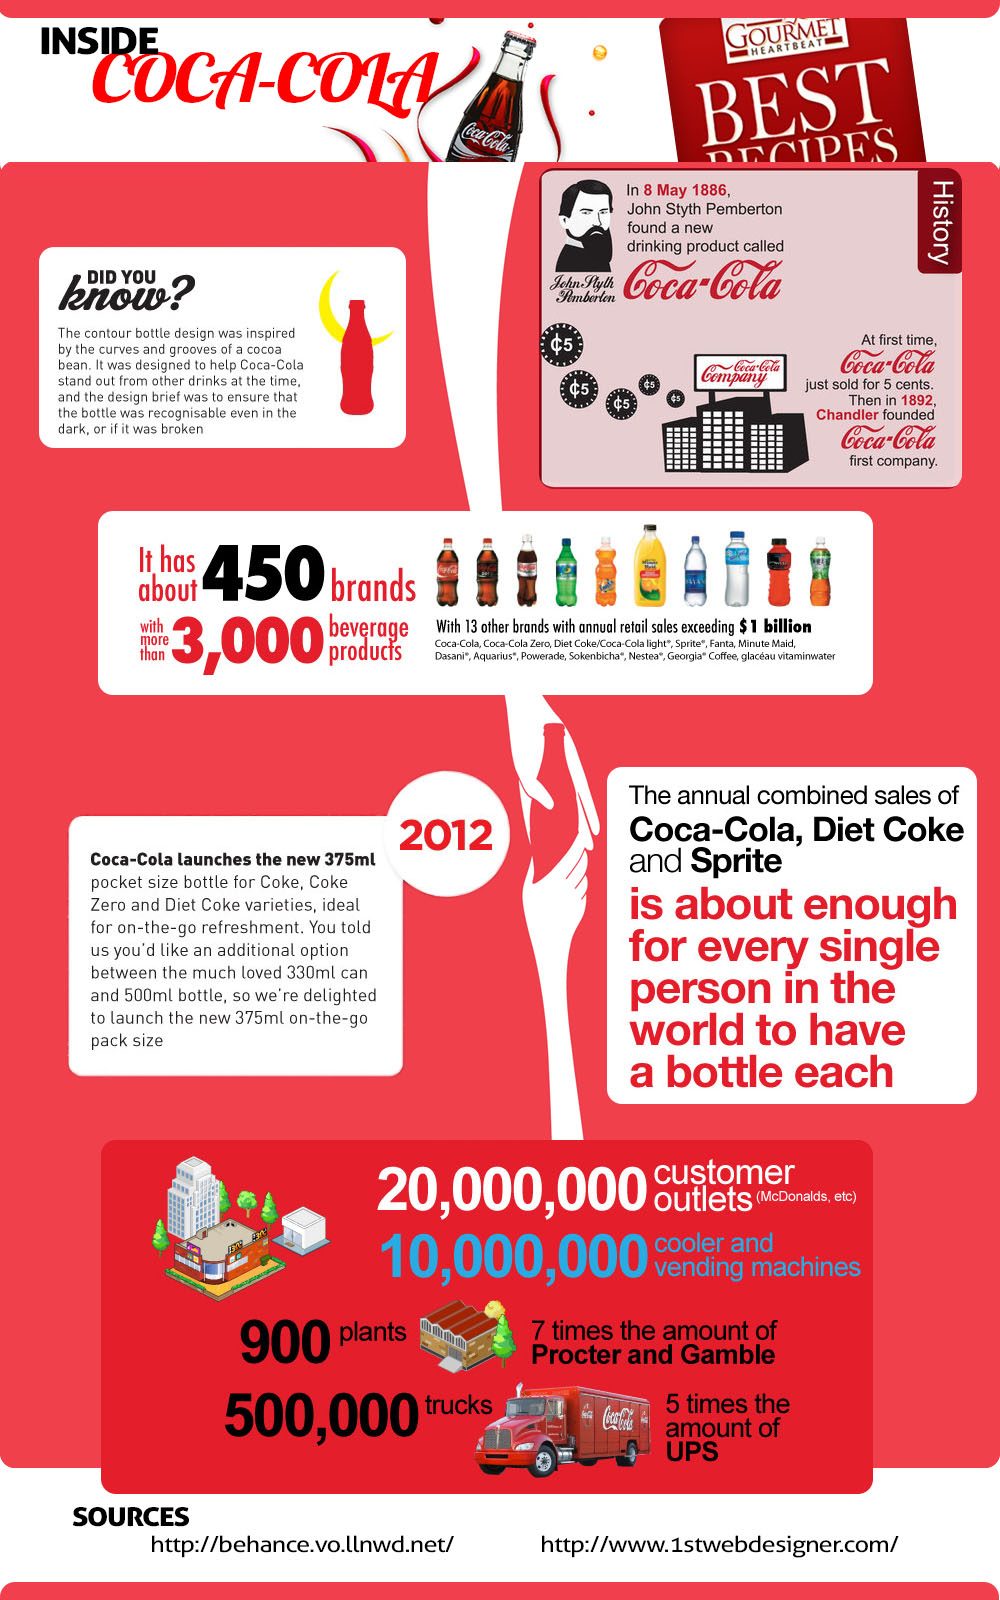 Inside Story of Coca-cola